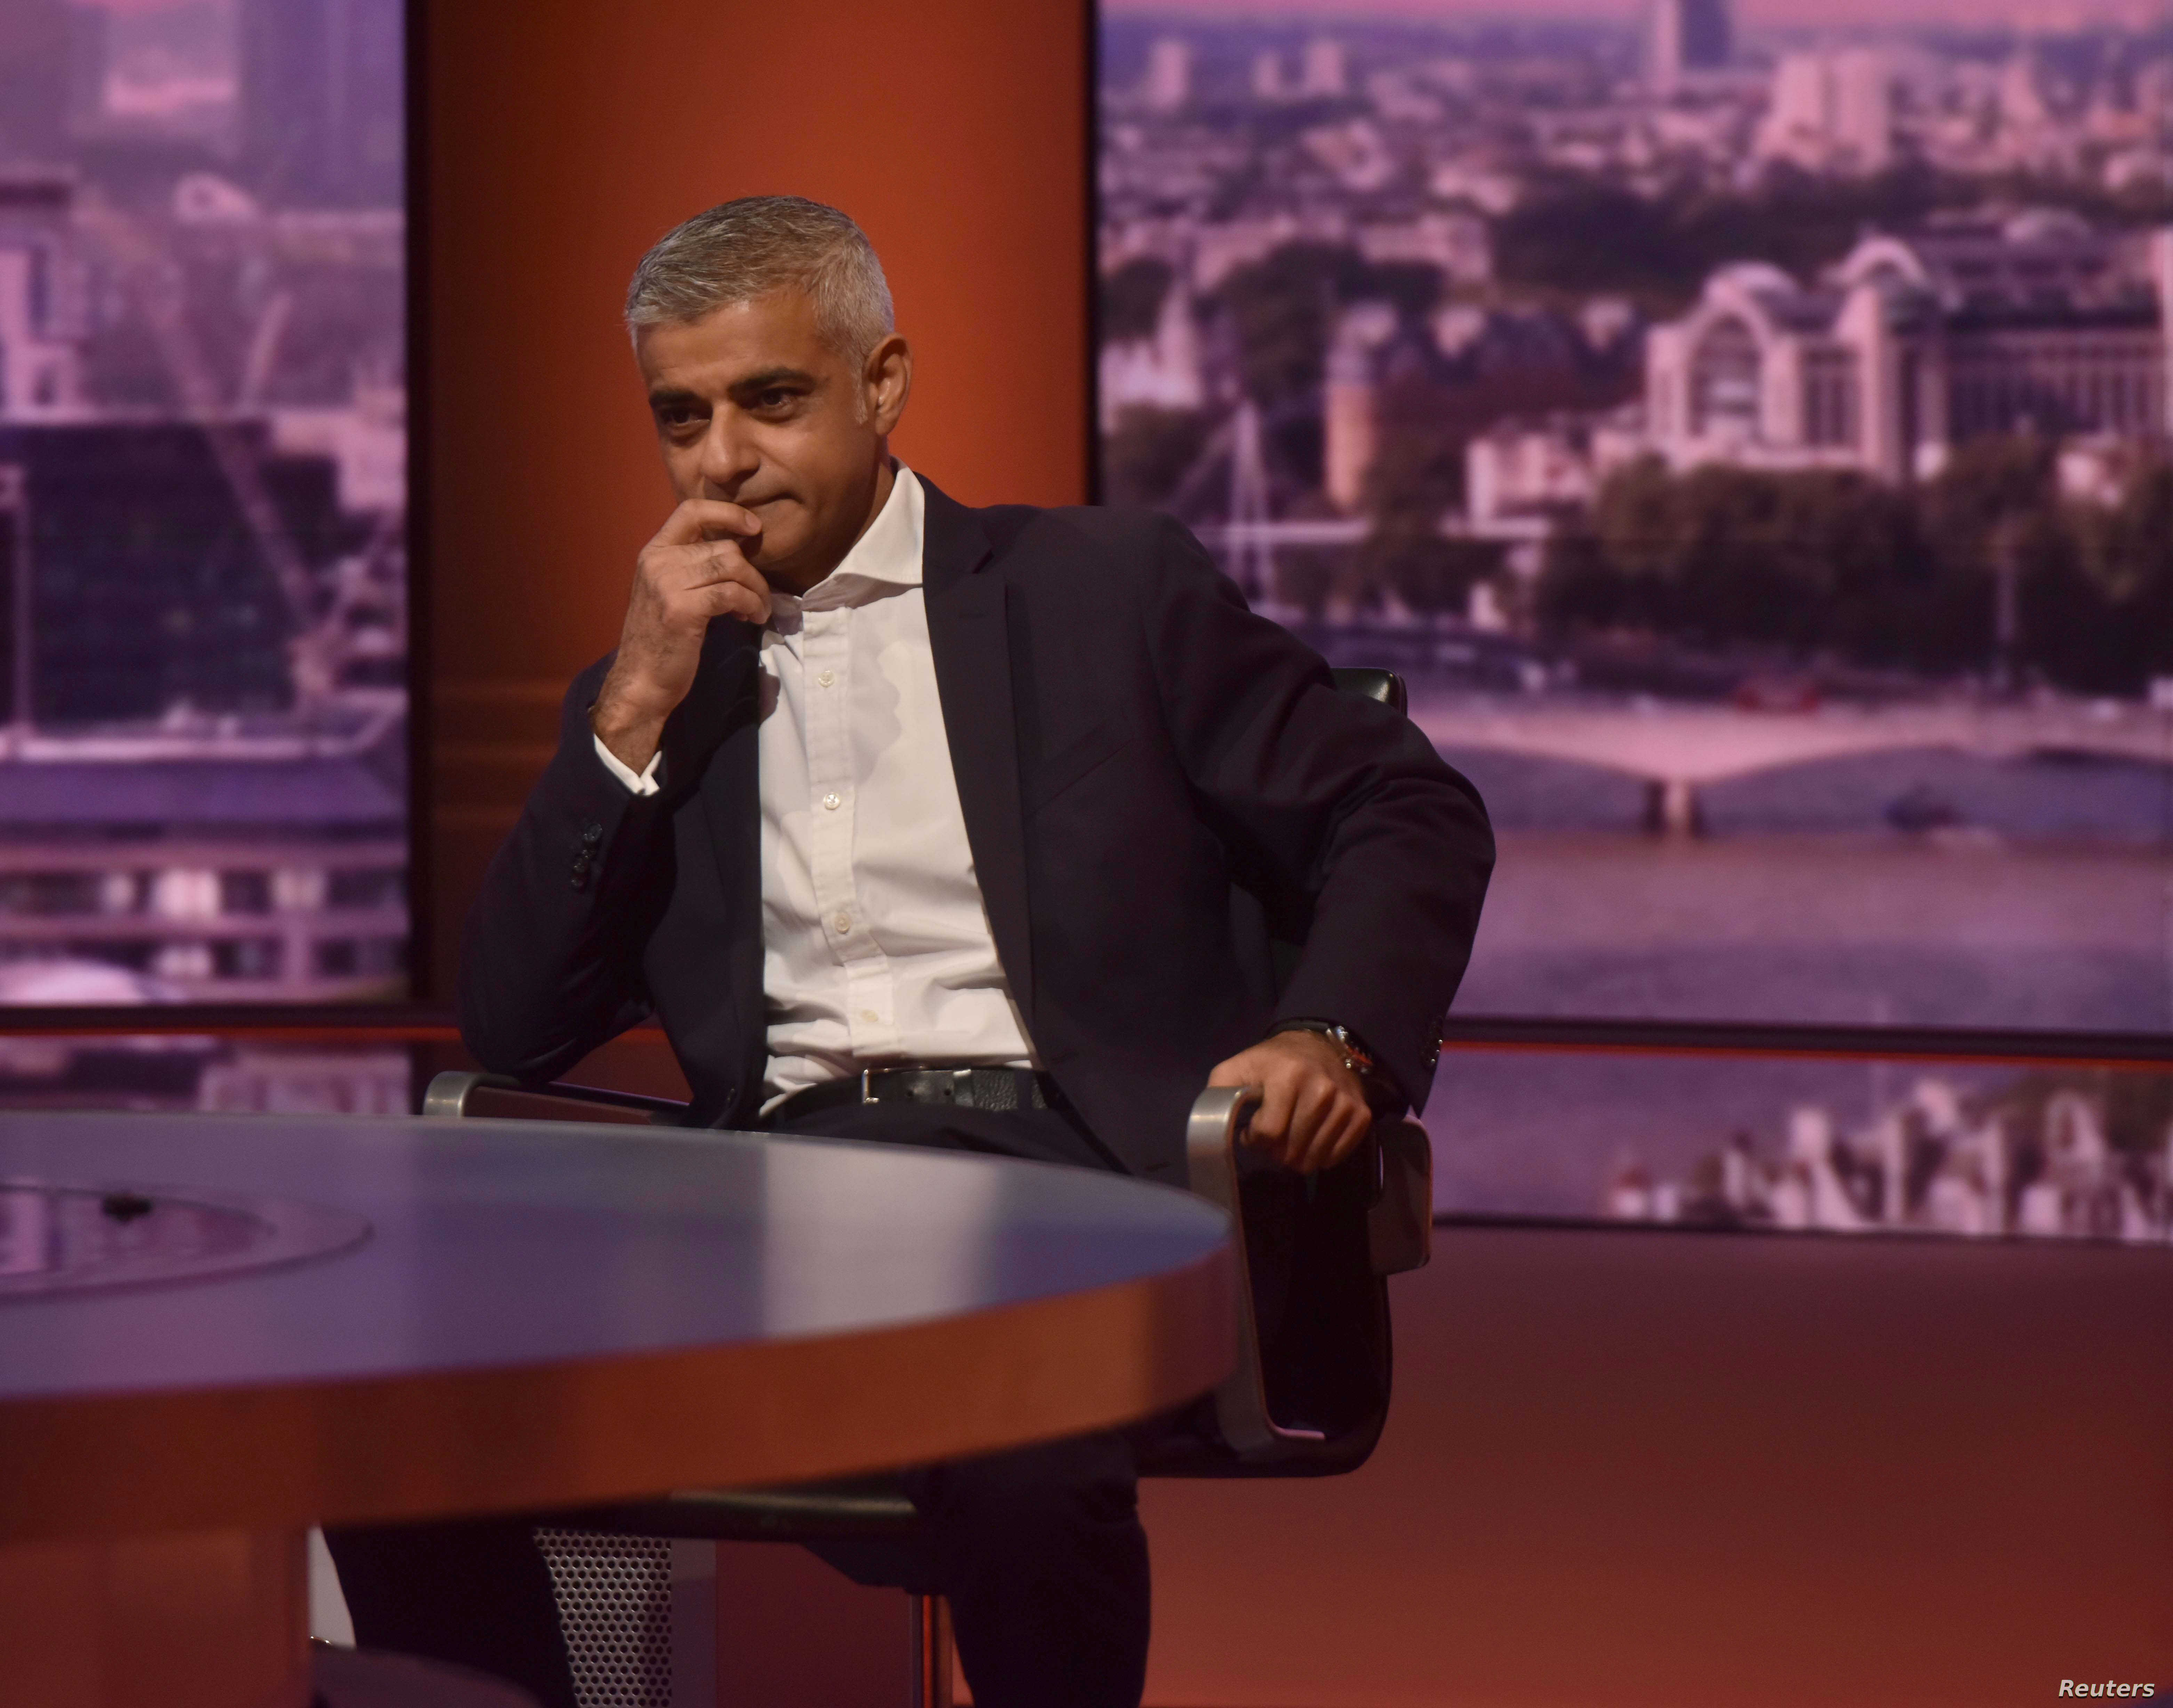 The Mayor of London, Sadiq Khan, appears on the BBC's Andrew Marr Show, in London, Britain, Sept. 16, 2018.